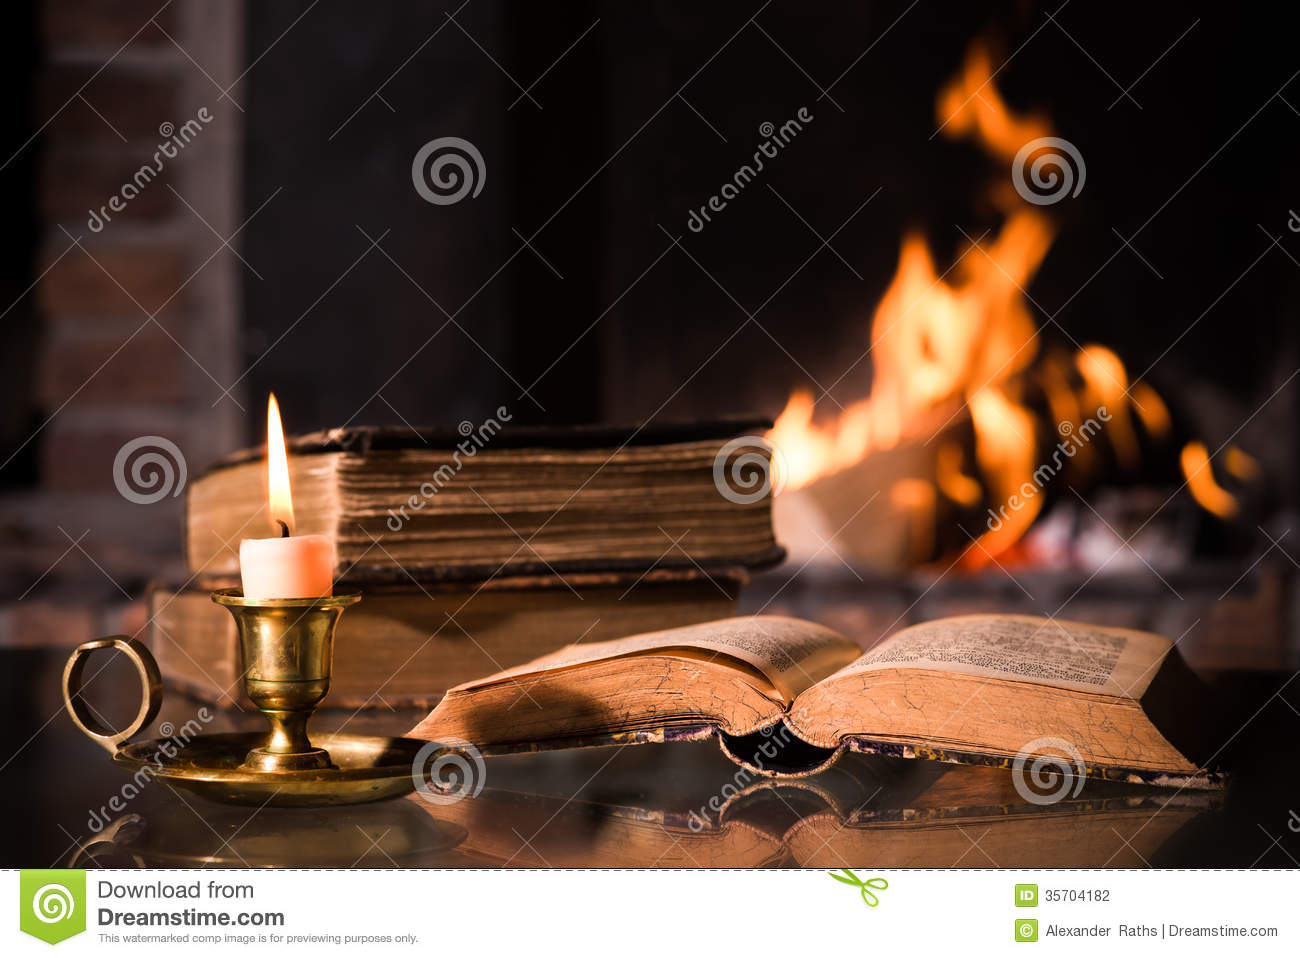 Best Fires Cheminées Bible With A Burning Candle Stock Photo Image Of Bible